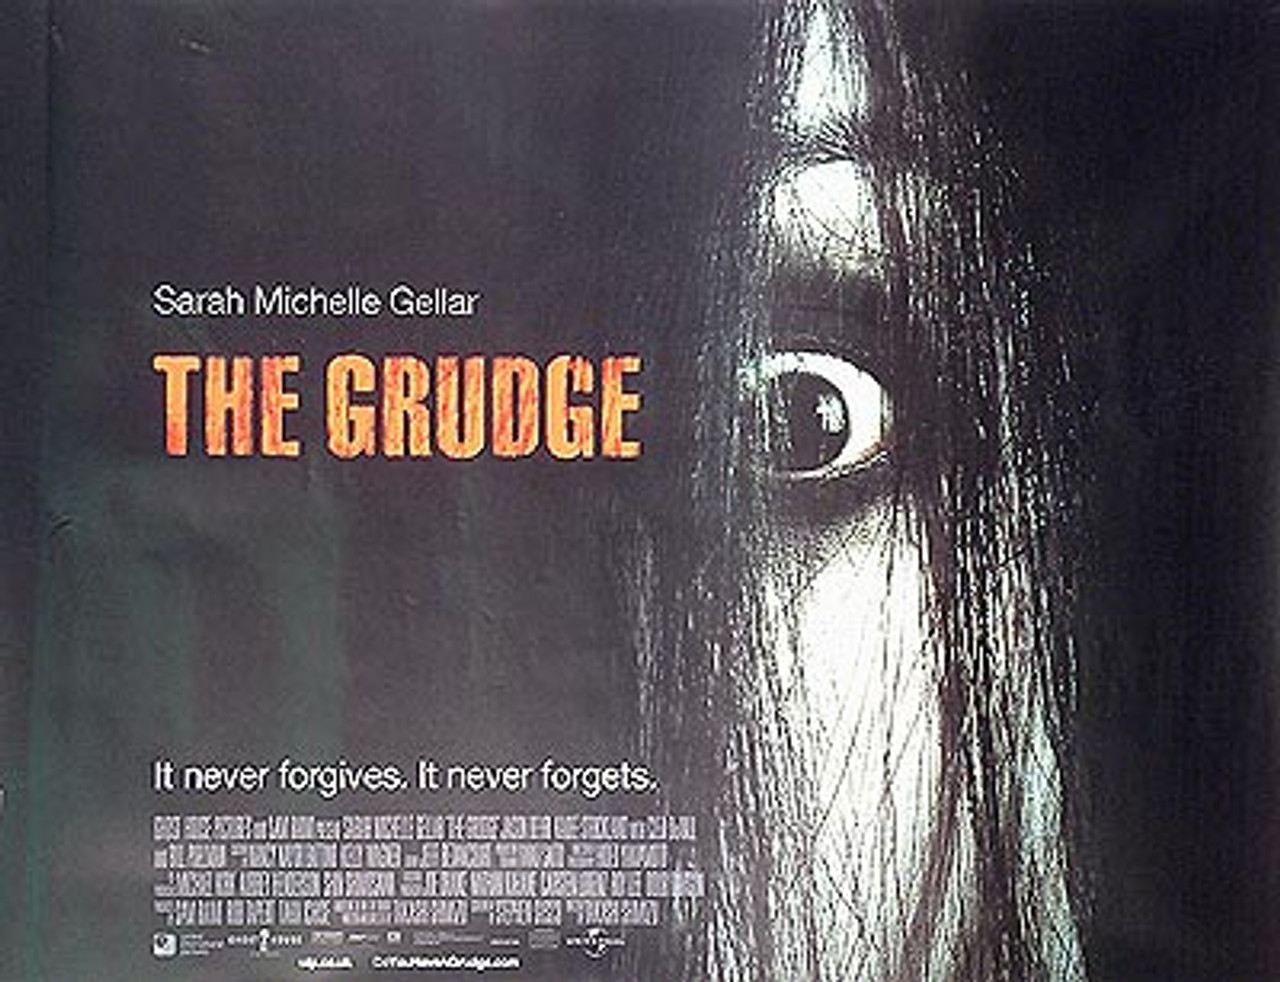 THE GRUDGE (DOUBLE SIDED) POSTER buy movie posters at Starstills ...